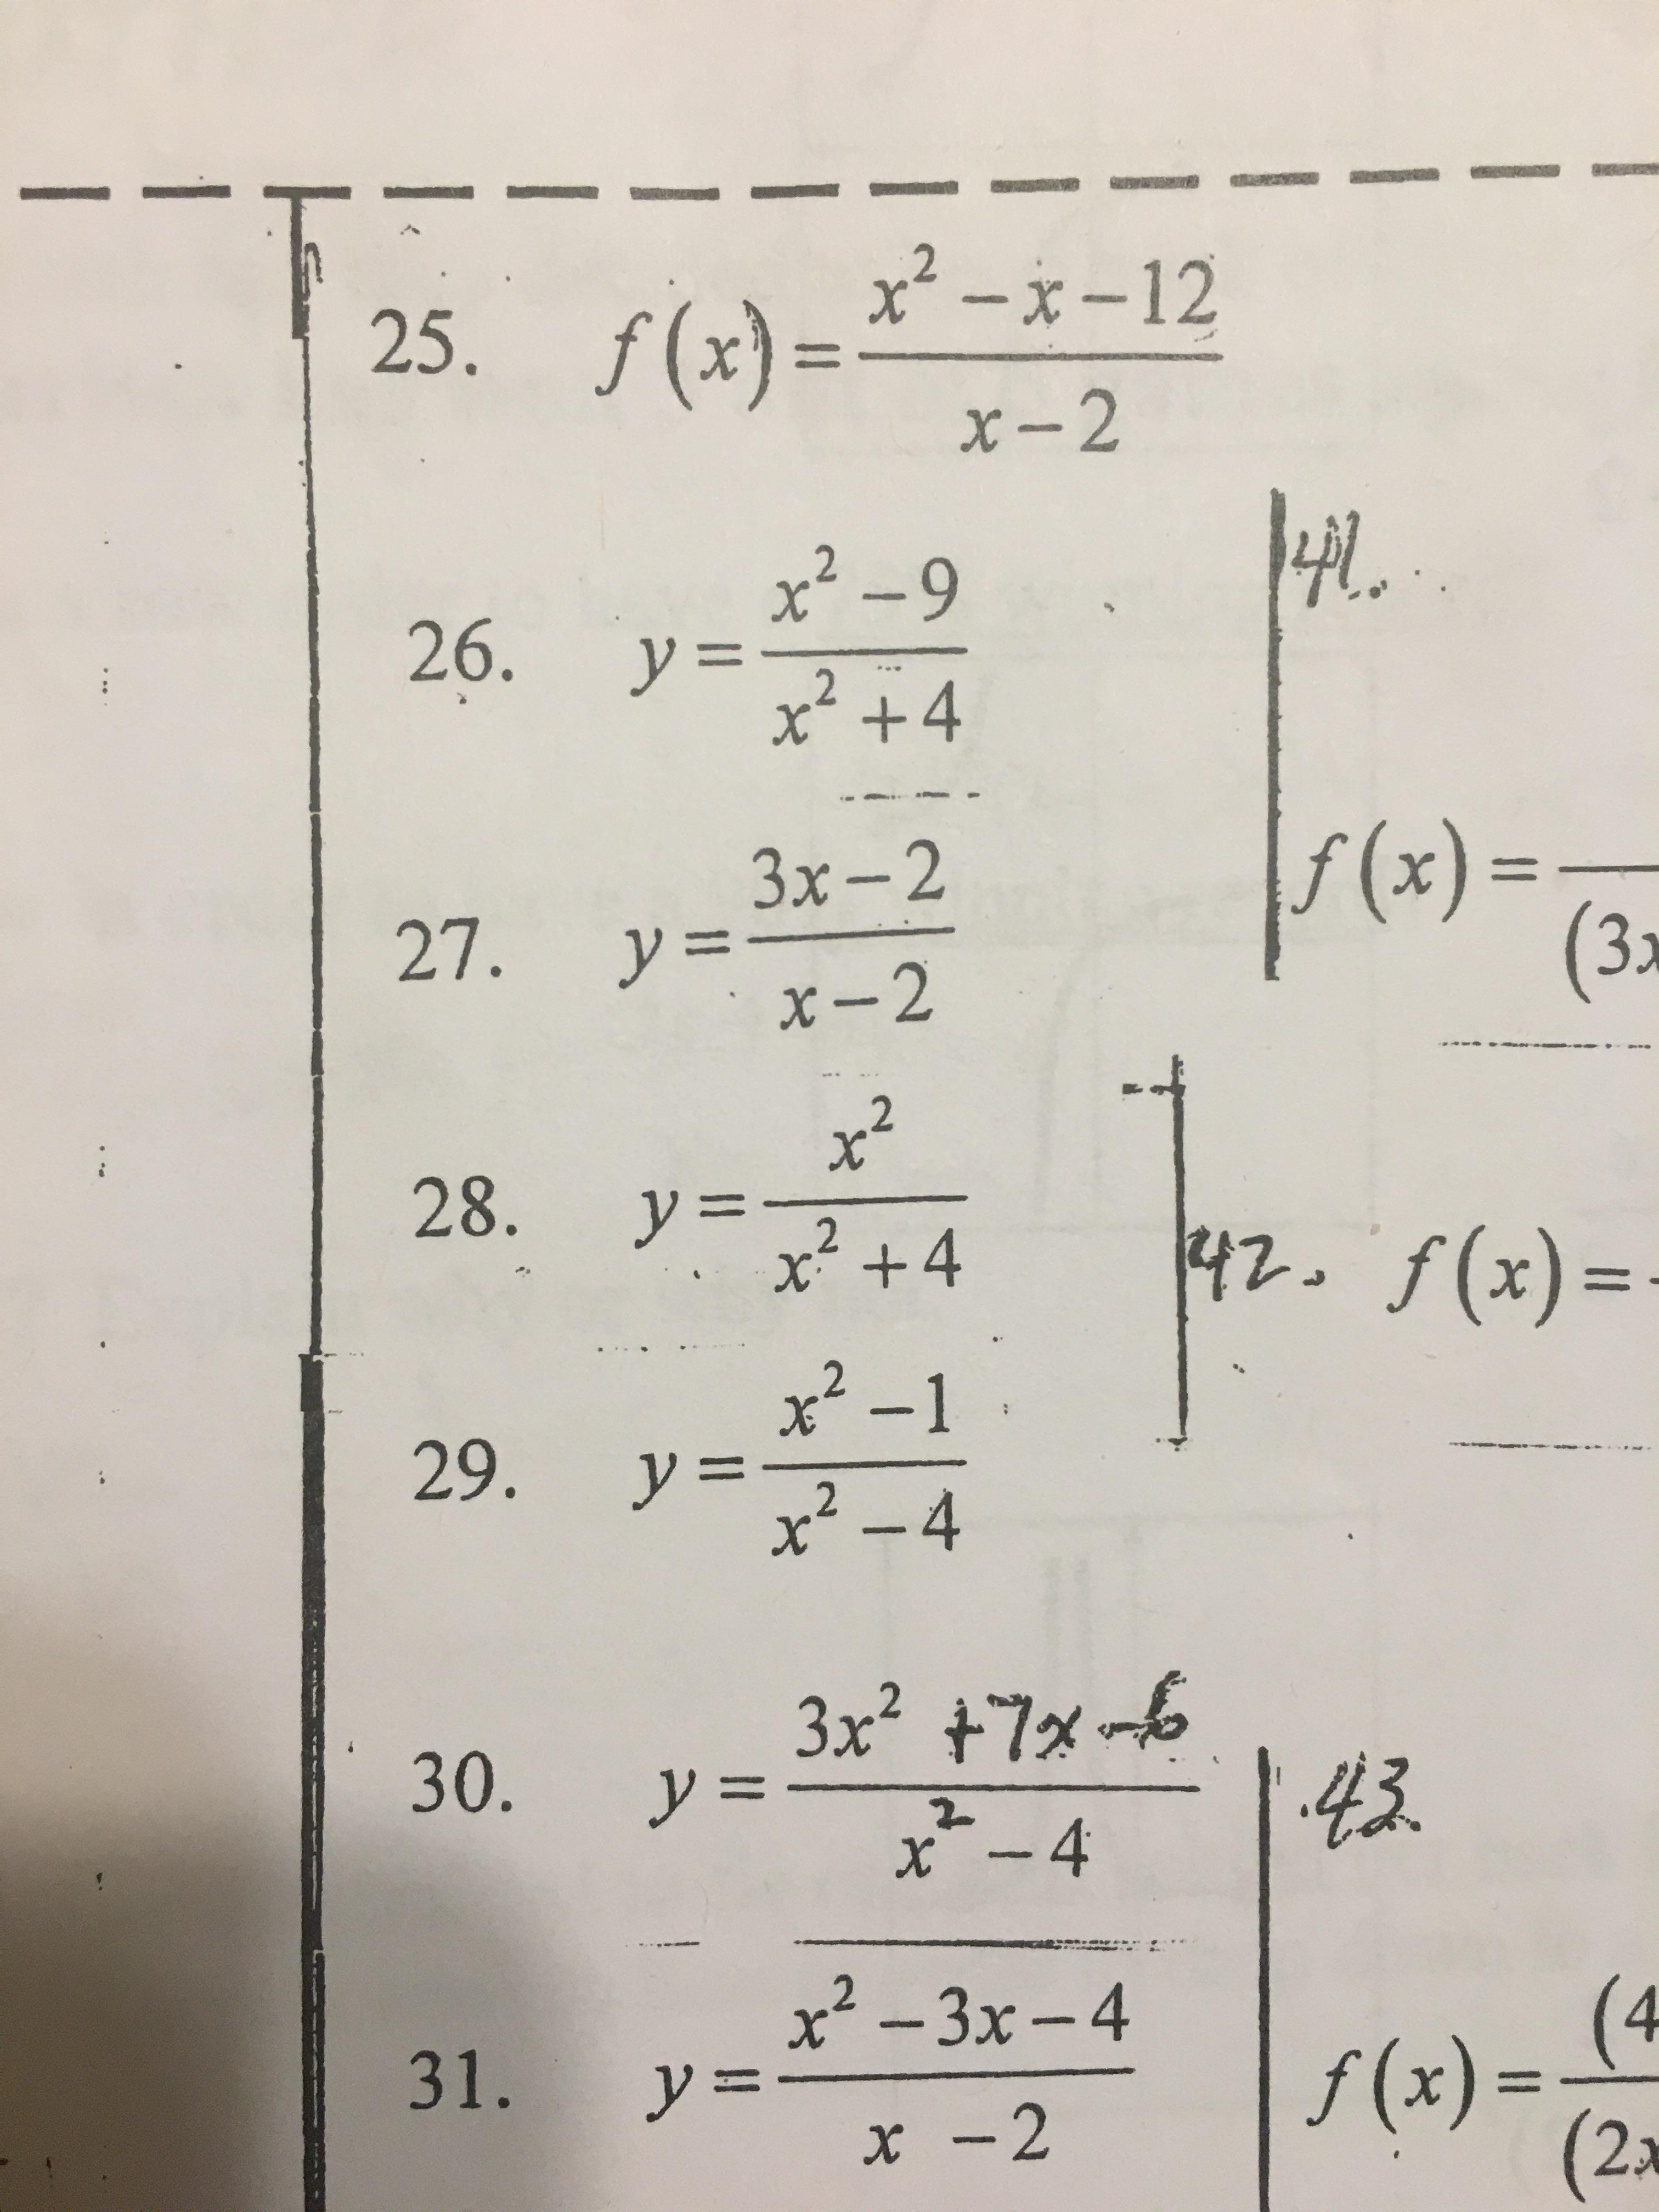 Algebra 2 How Do I Graph These I Know How To Find The X